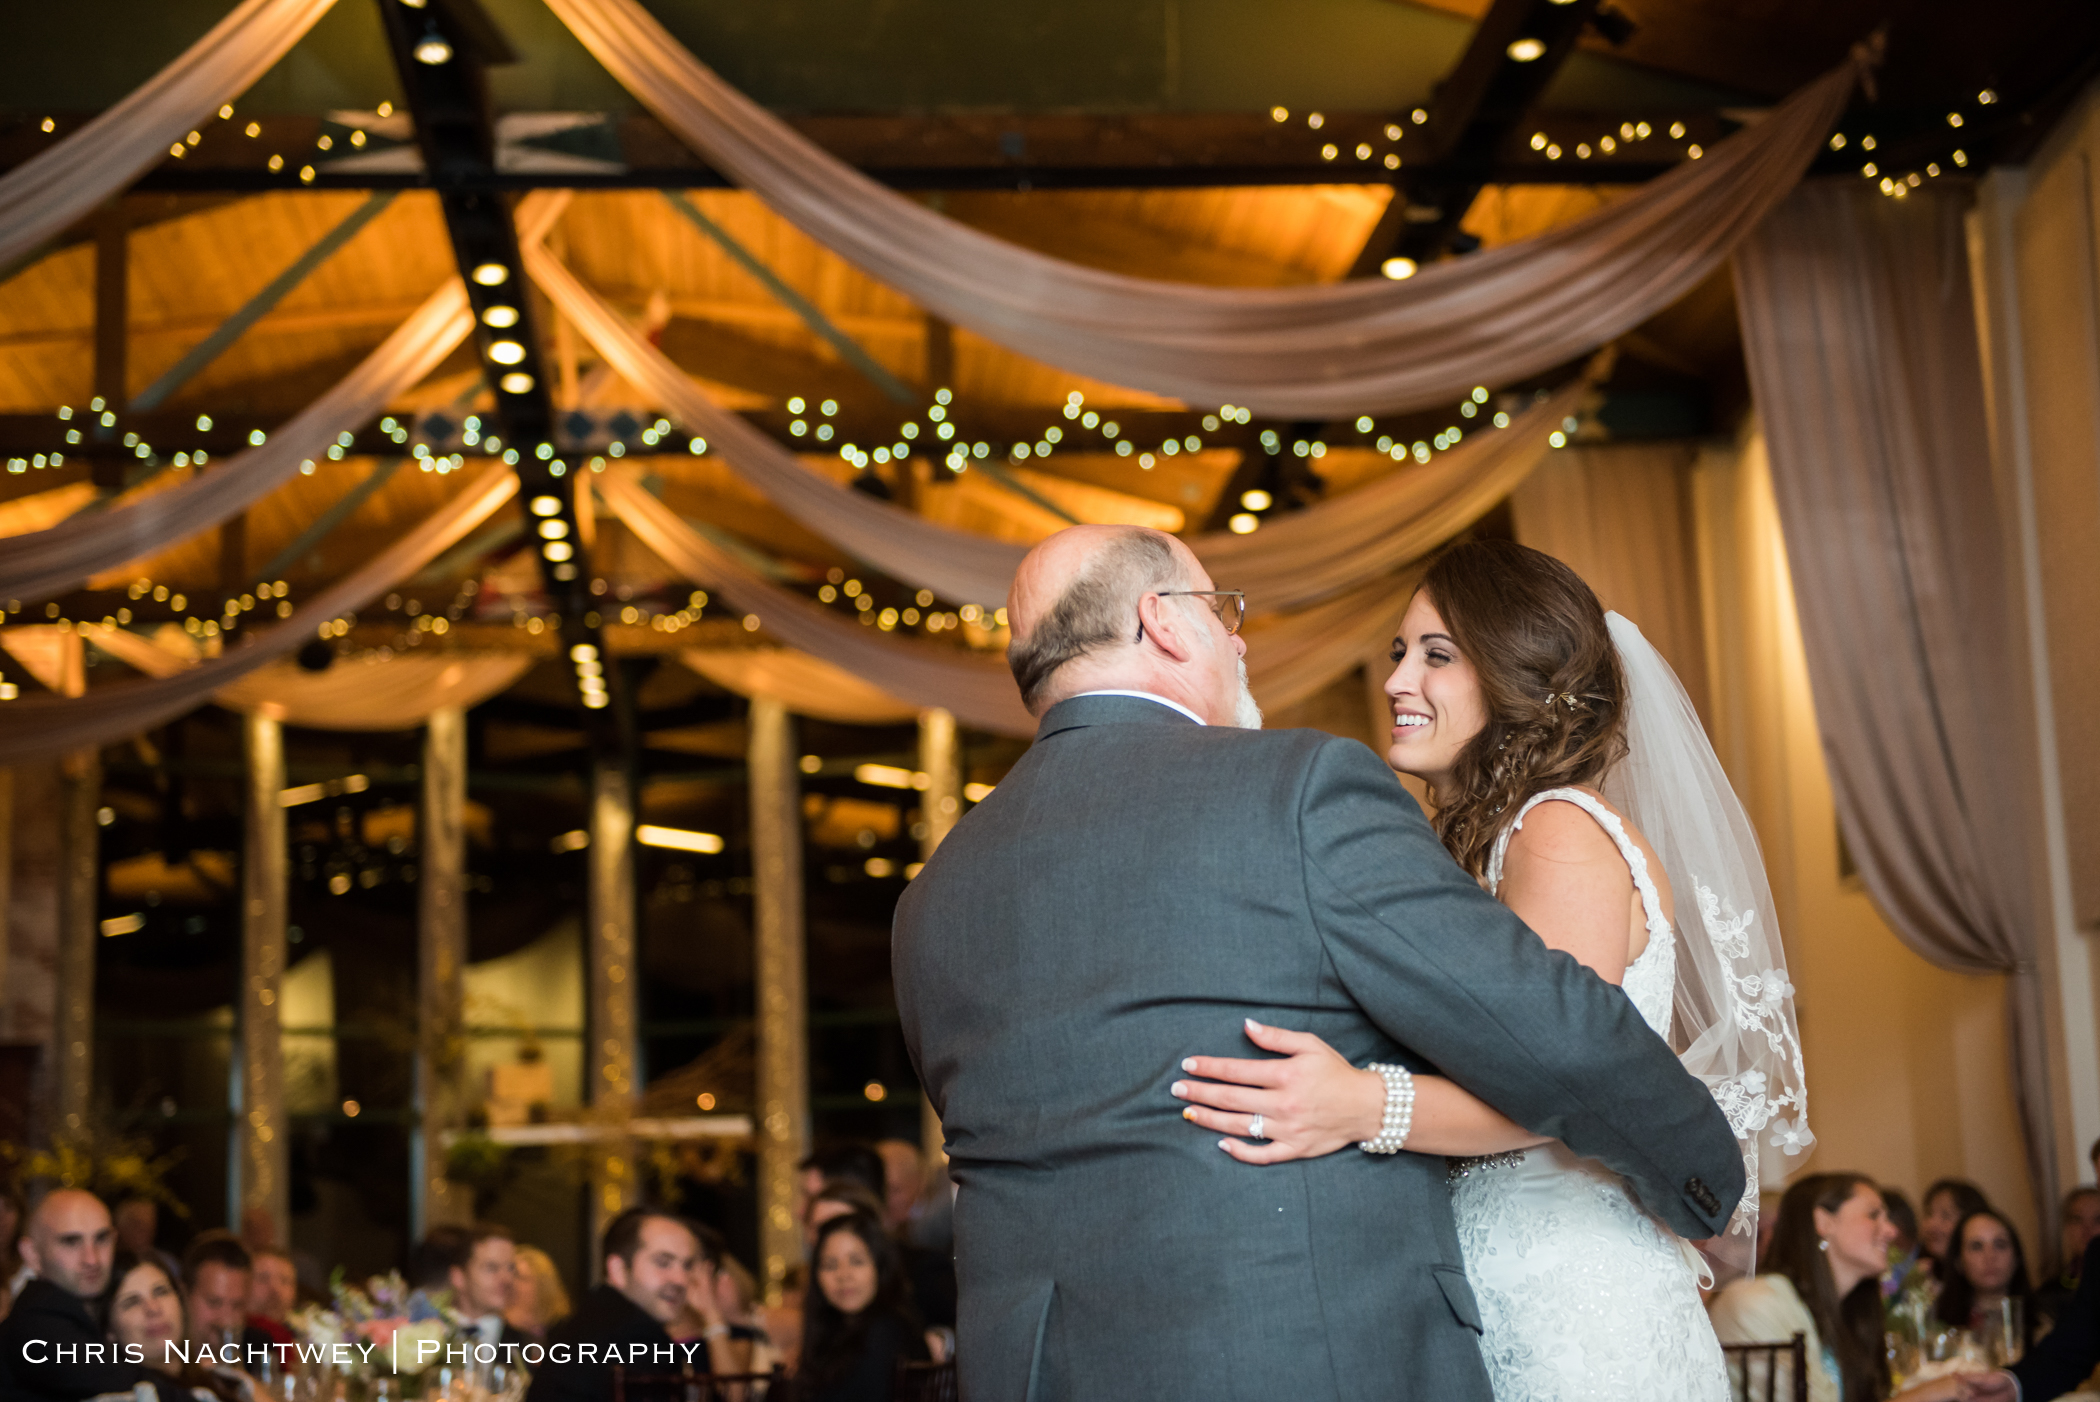 pond-house-cafe-wedding-hartford-ct-photos-chris-nachtwey-photography-2017-jackie-matt-44.jpg